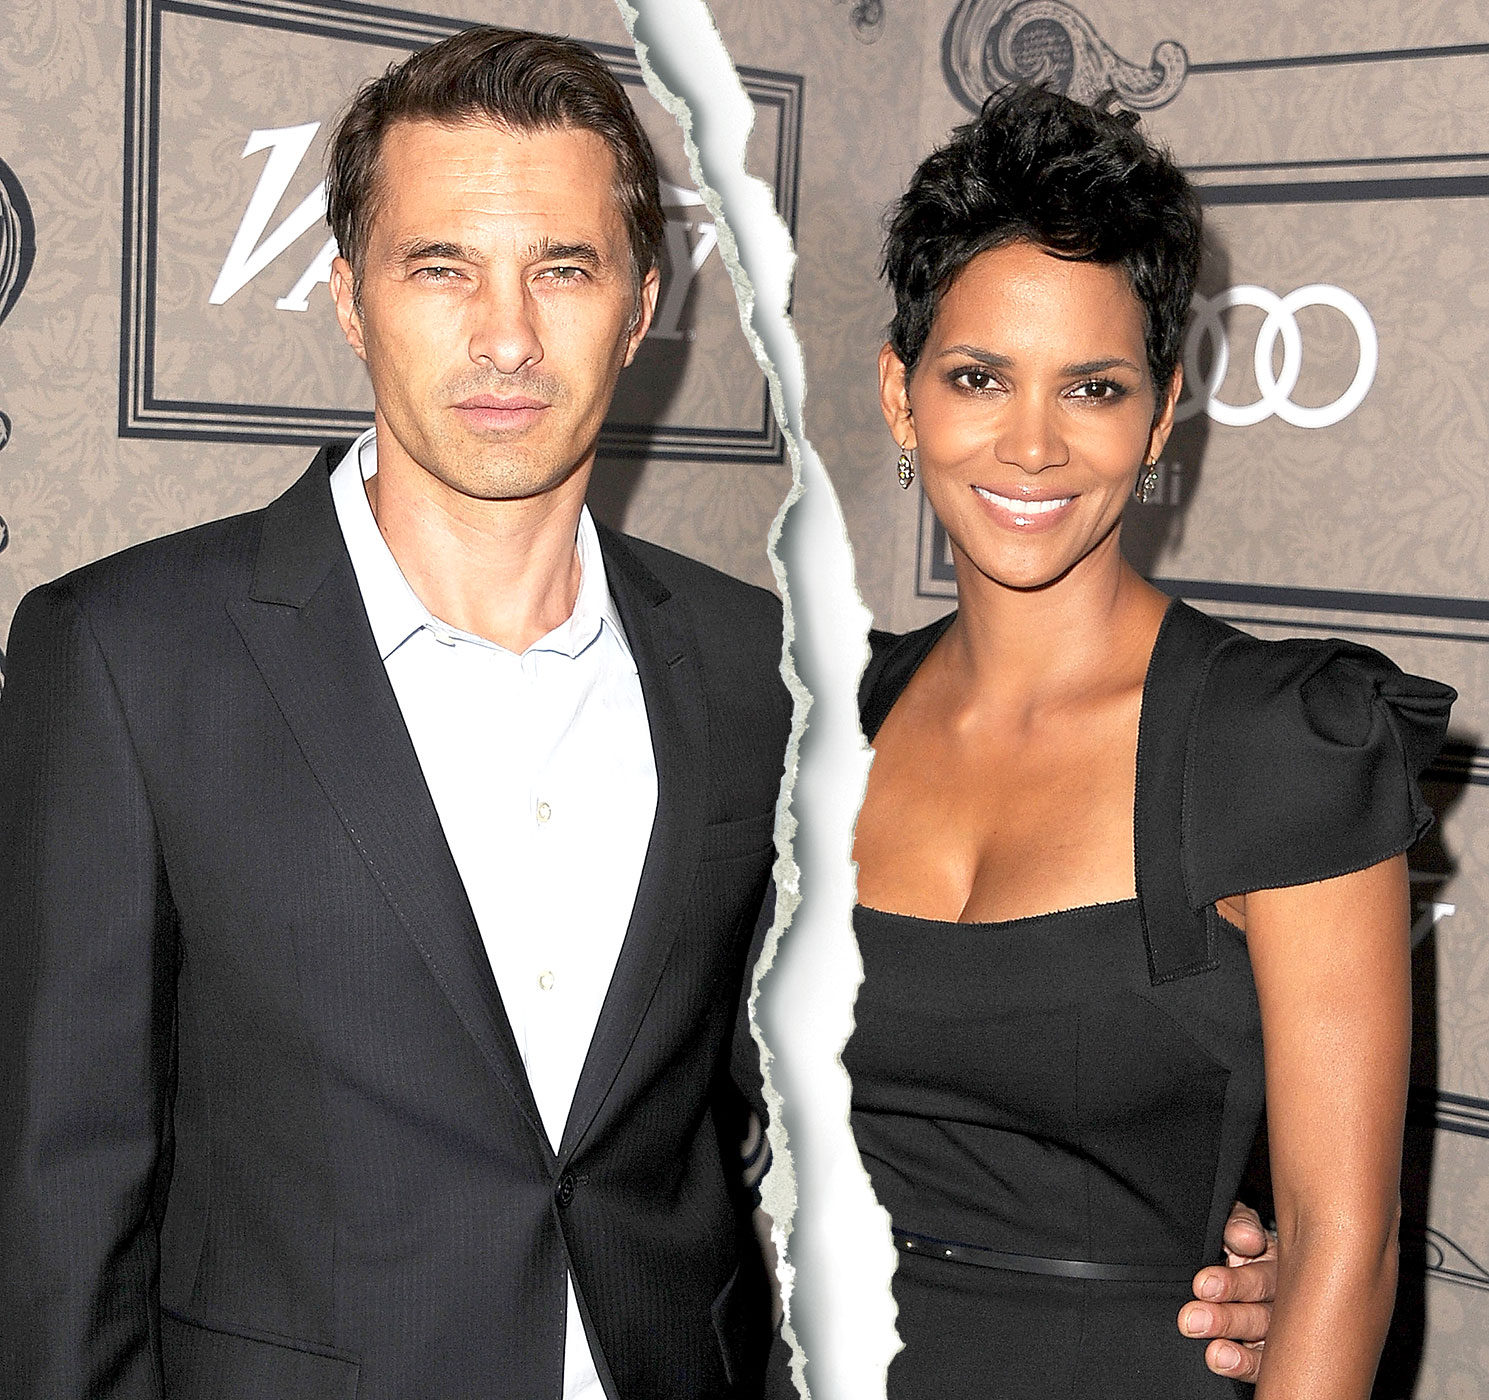 Halle Berry and Olivier Martinez Are GettingDivorced recommend